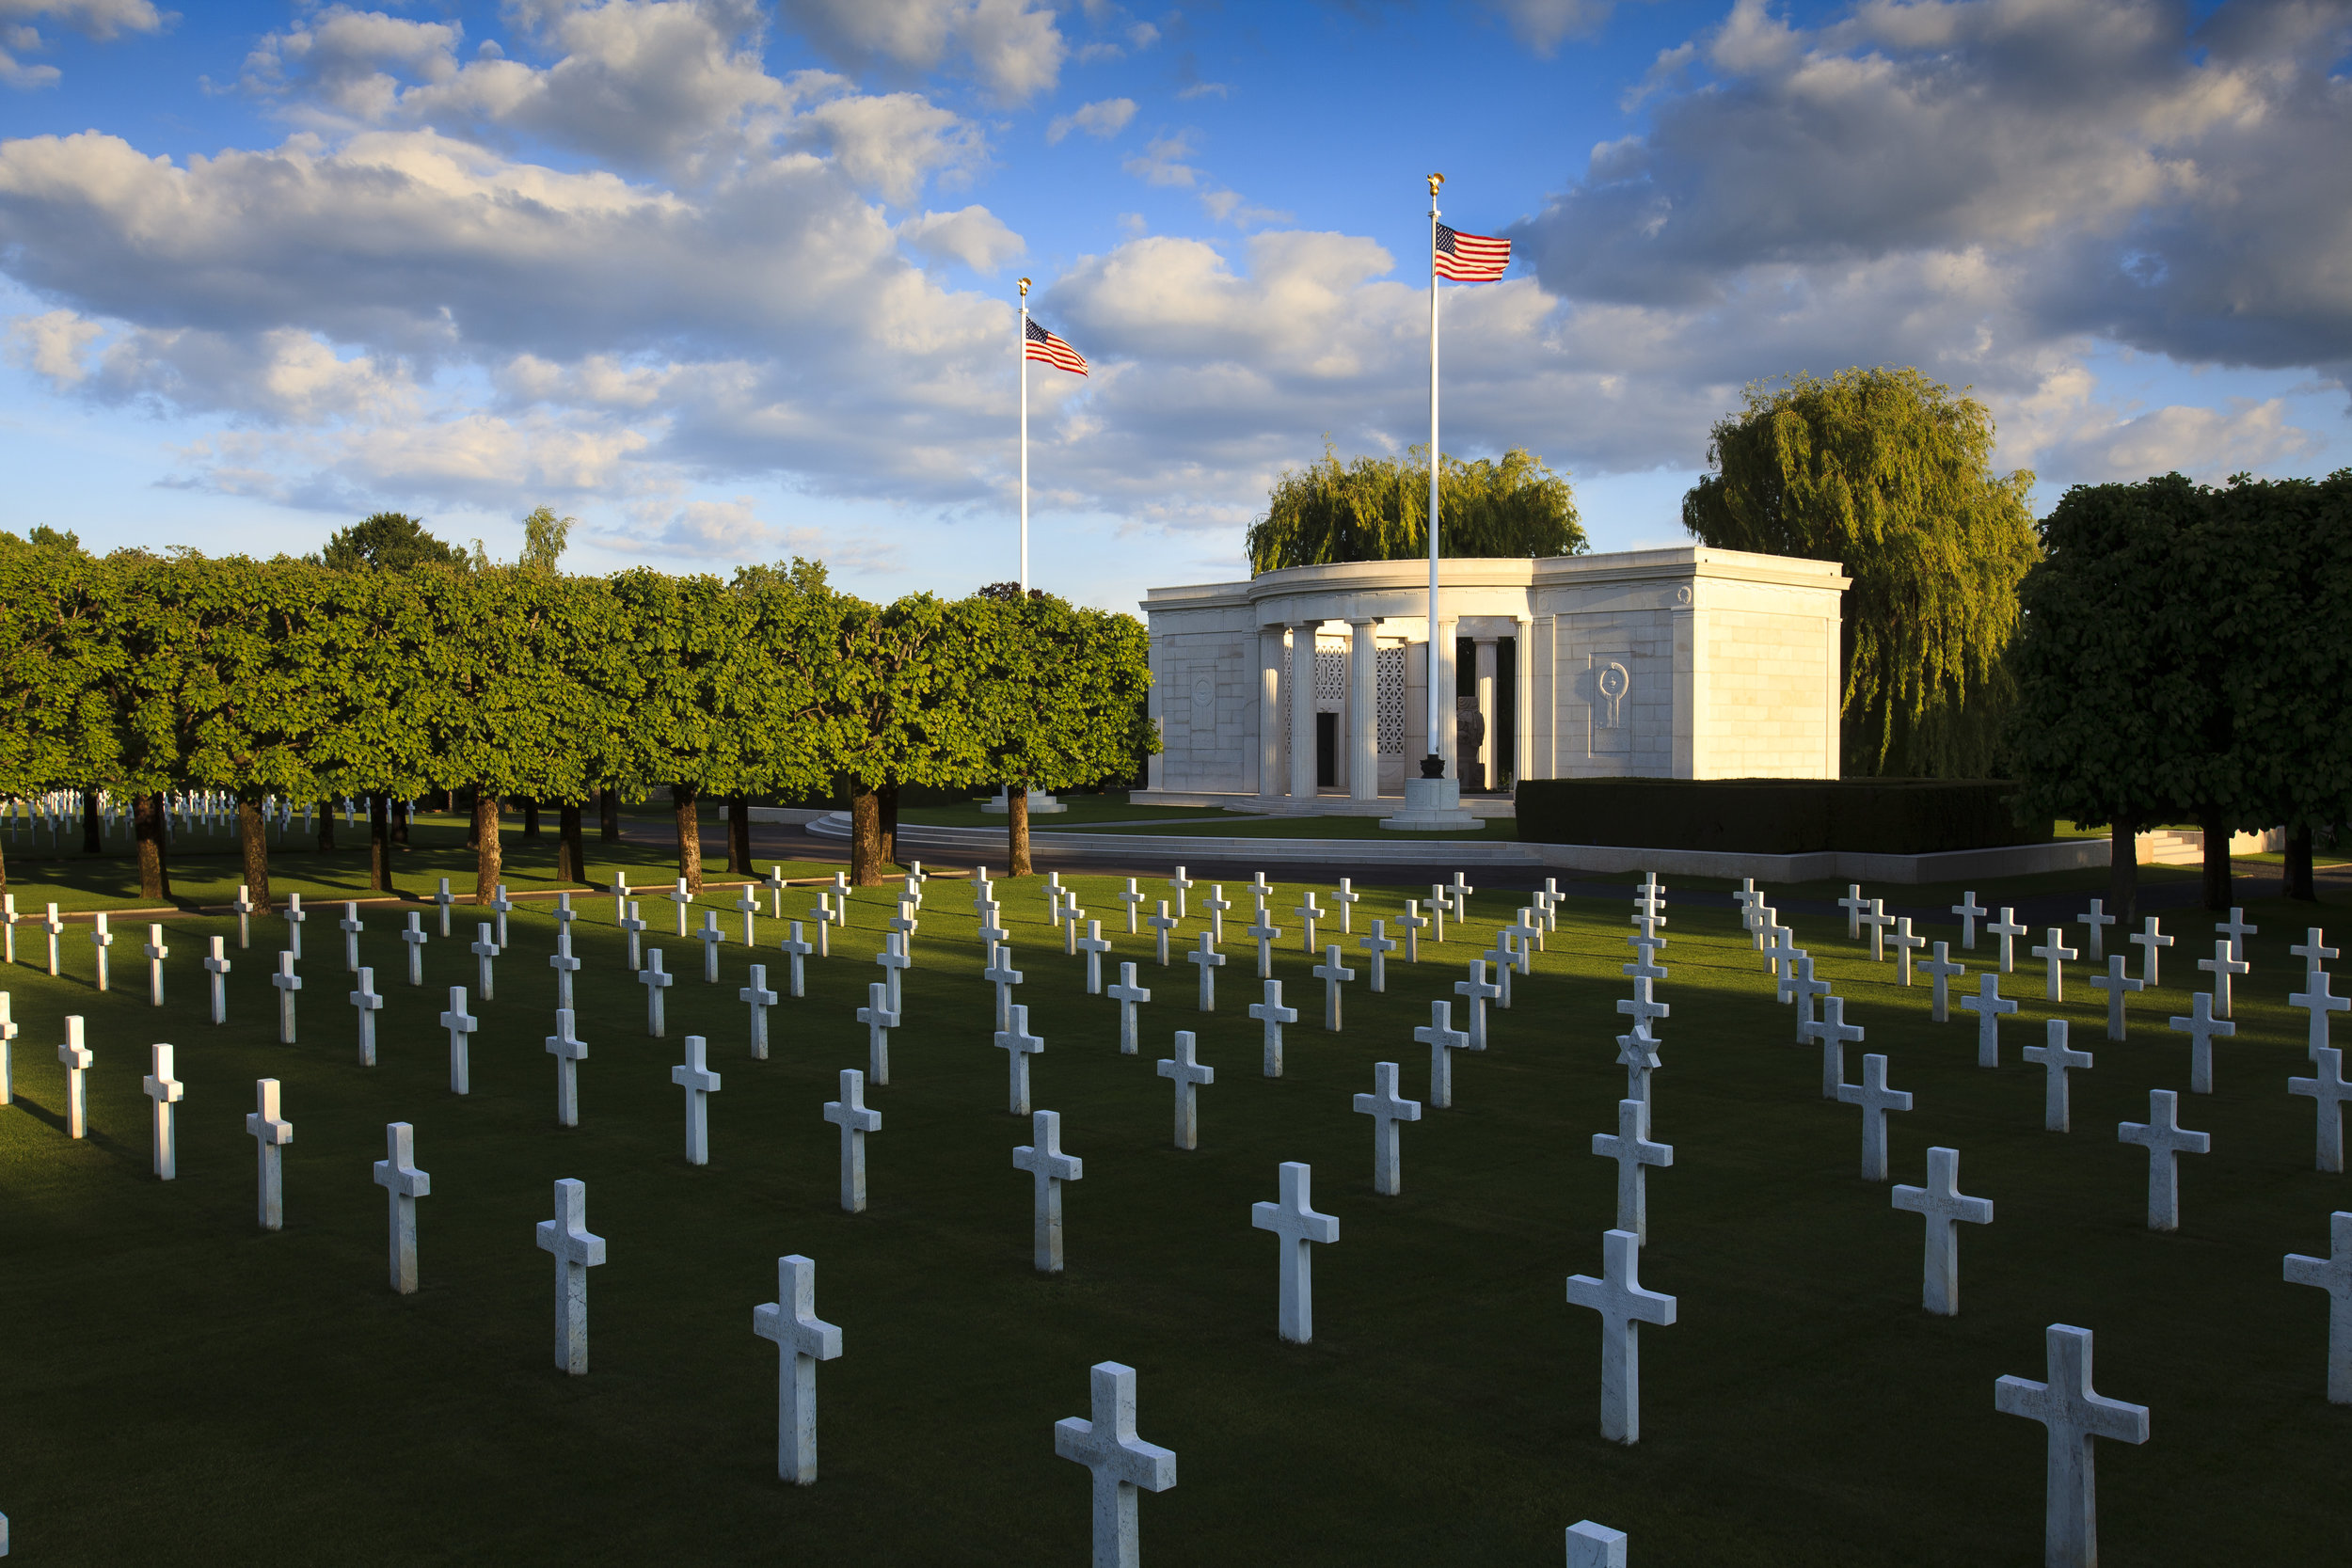 The chapel at St. Mihiel American Cemetery (American Battle Monuments Commission)